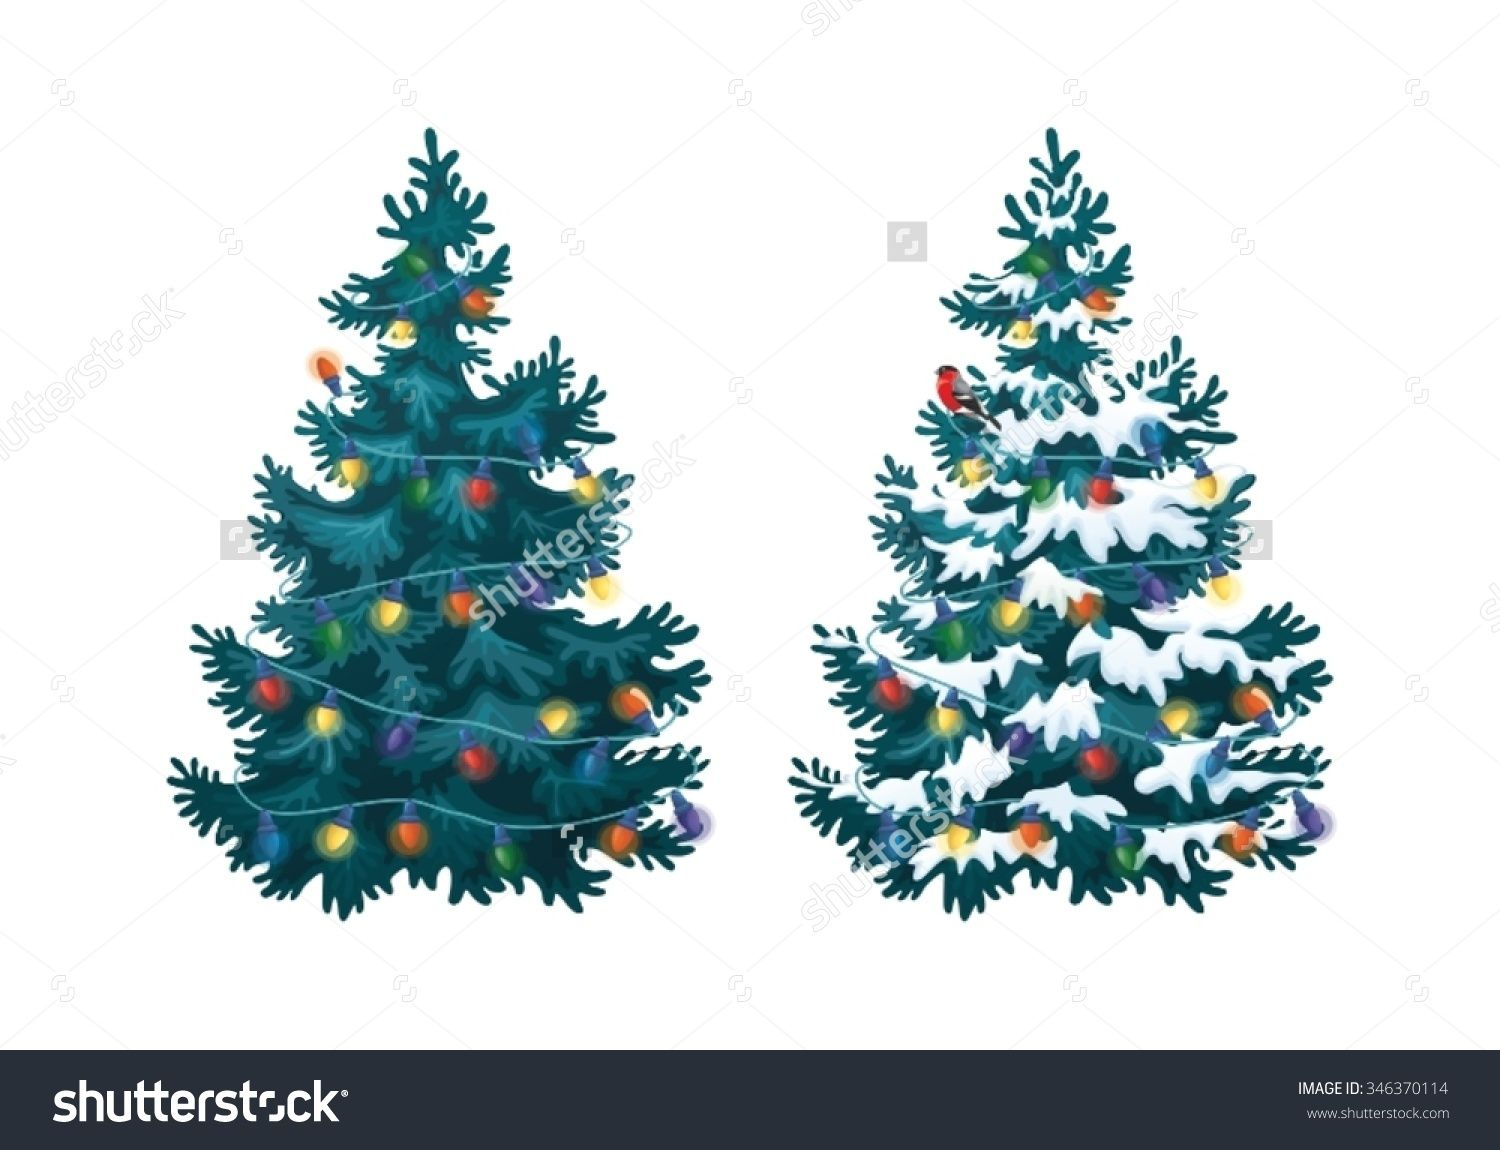 Tree Vector Vector Christmas Tree Drawn Christmas Tree Realistic Christmas Tree With Snow Christmas Tree Drawing Tree Find & download free graphic resources for christmas tree cartoon. tree vector vector christmas tree